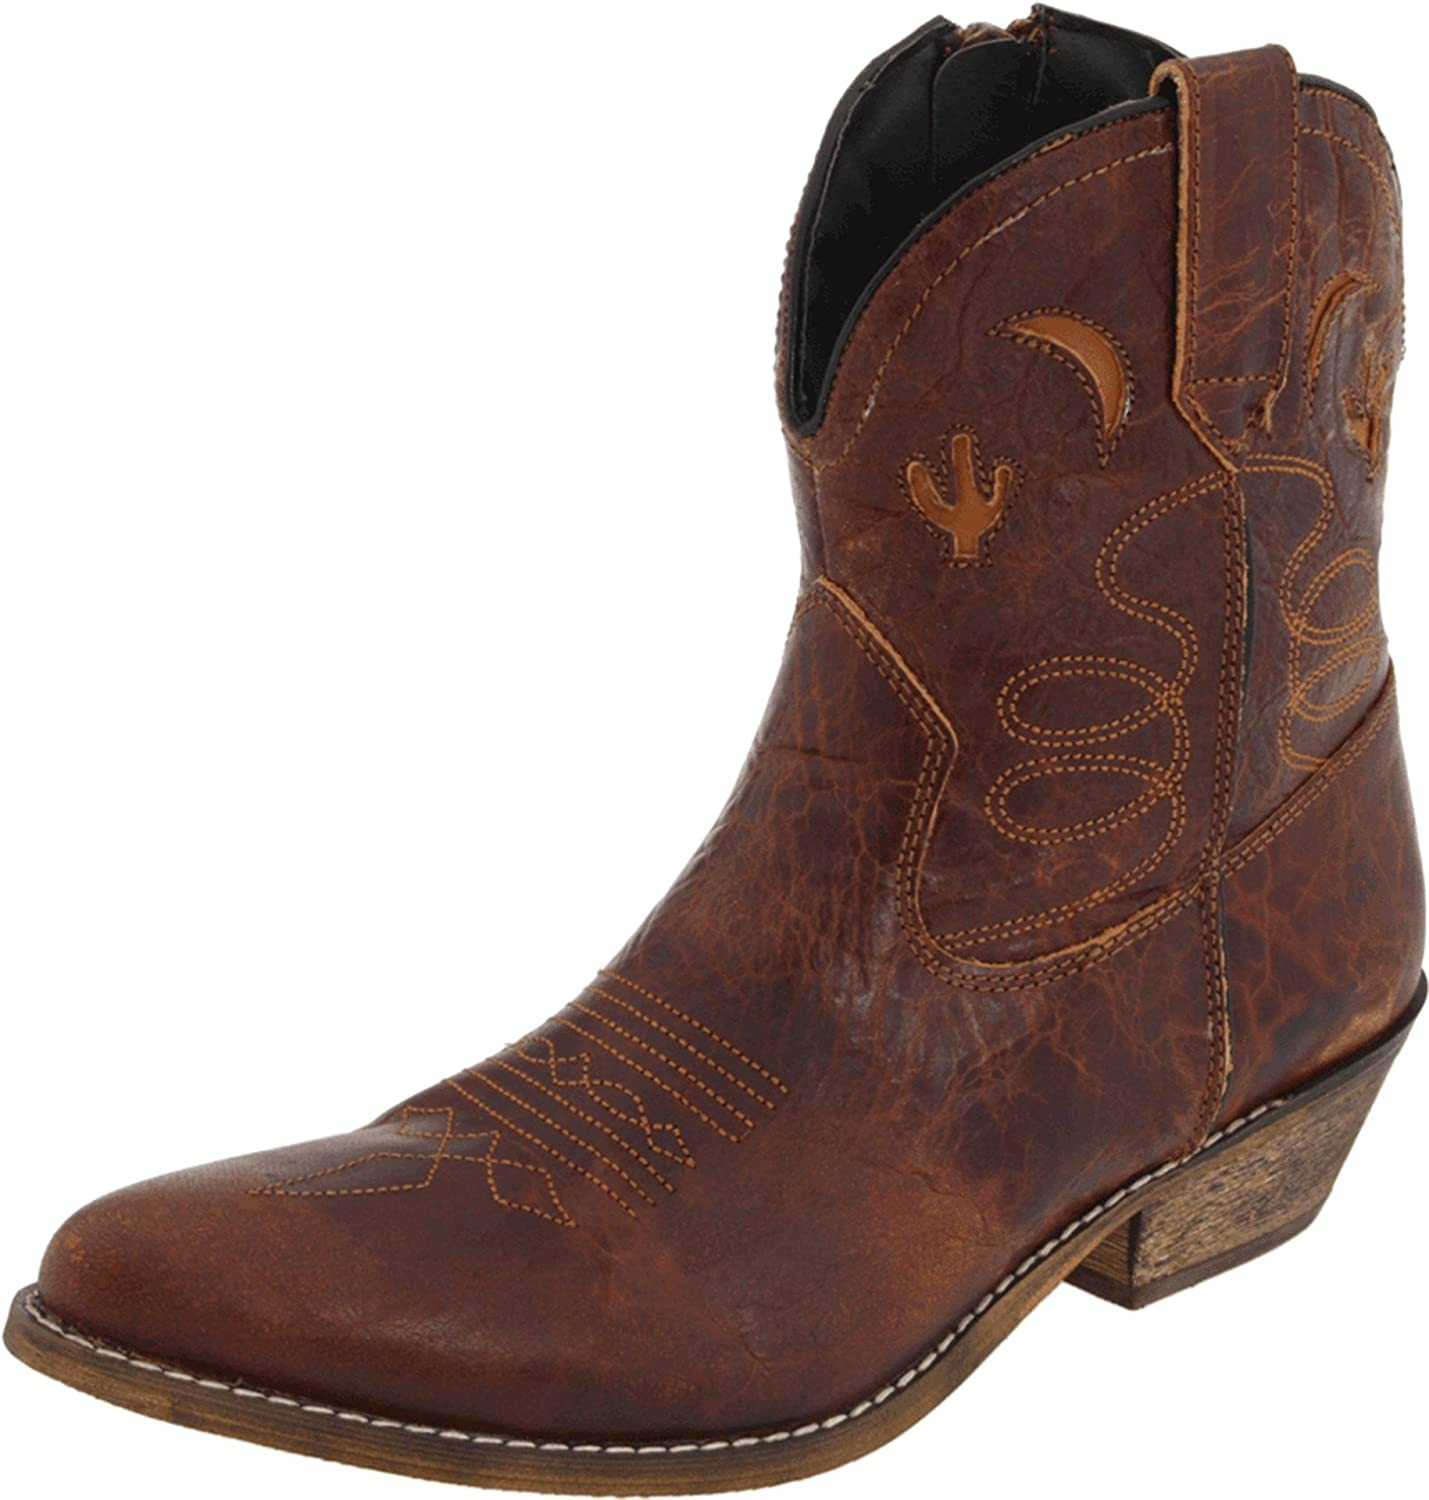 Dingo Women's Adobe Rose Leather Boots B009ZDHU06 7 W US|Light Brown Distresssed